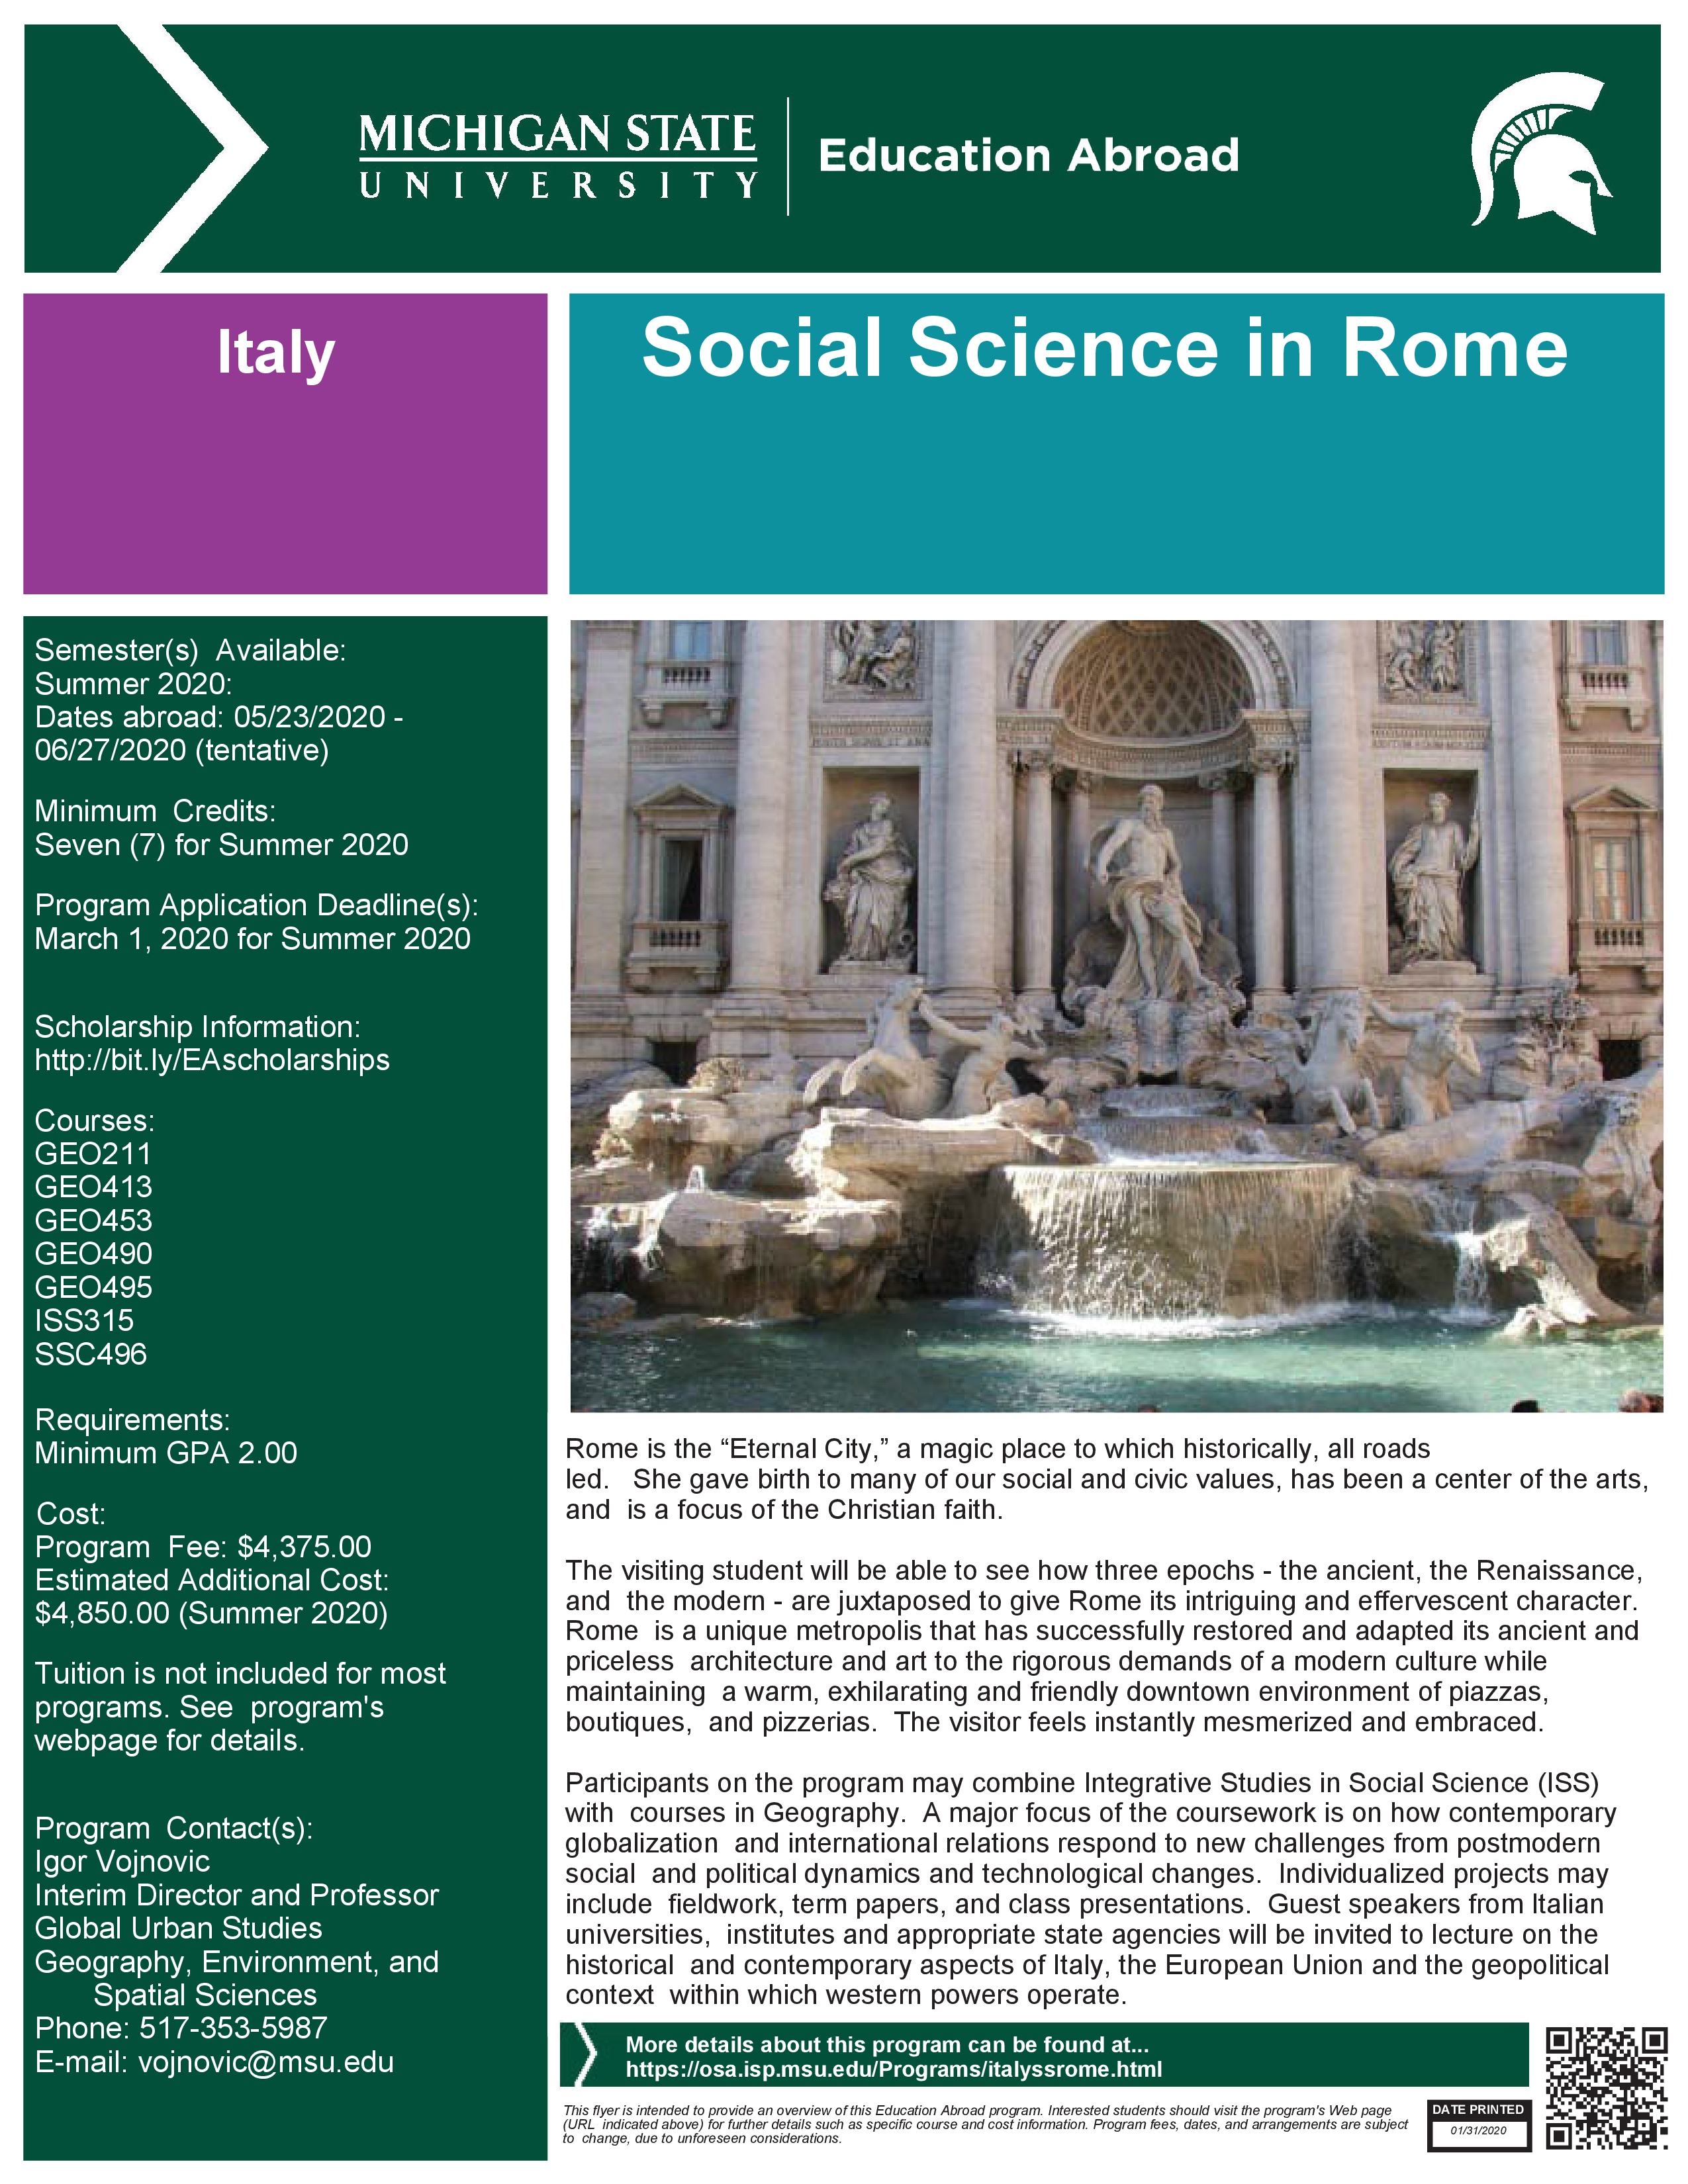 Education Abroad - Social Science in Rome 2020